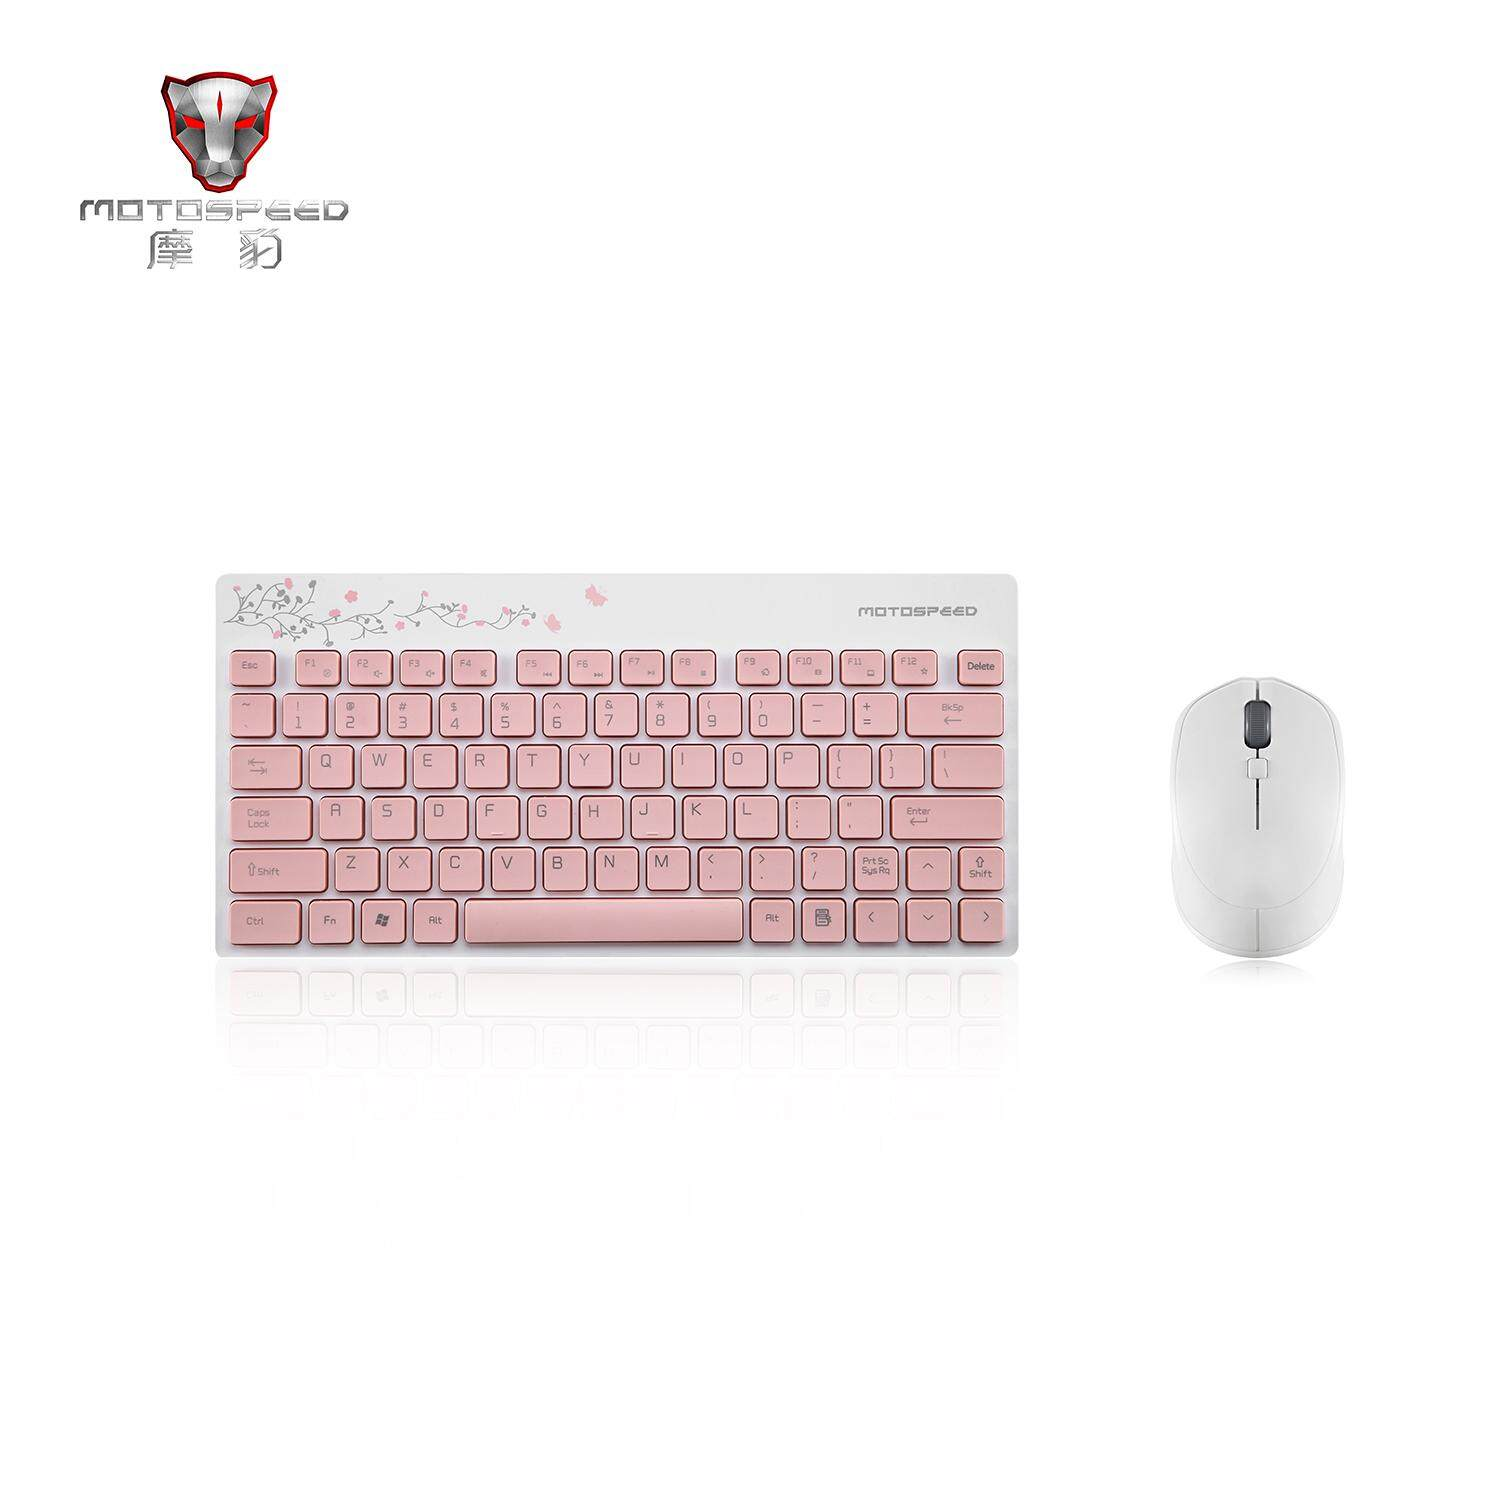 Basic Keyboards For Sale Computer Prices Brands Keyboard Wireless And Mouse Combo Hk 3800 Specs In Philippines